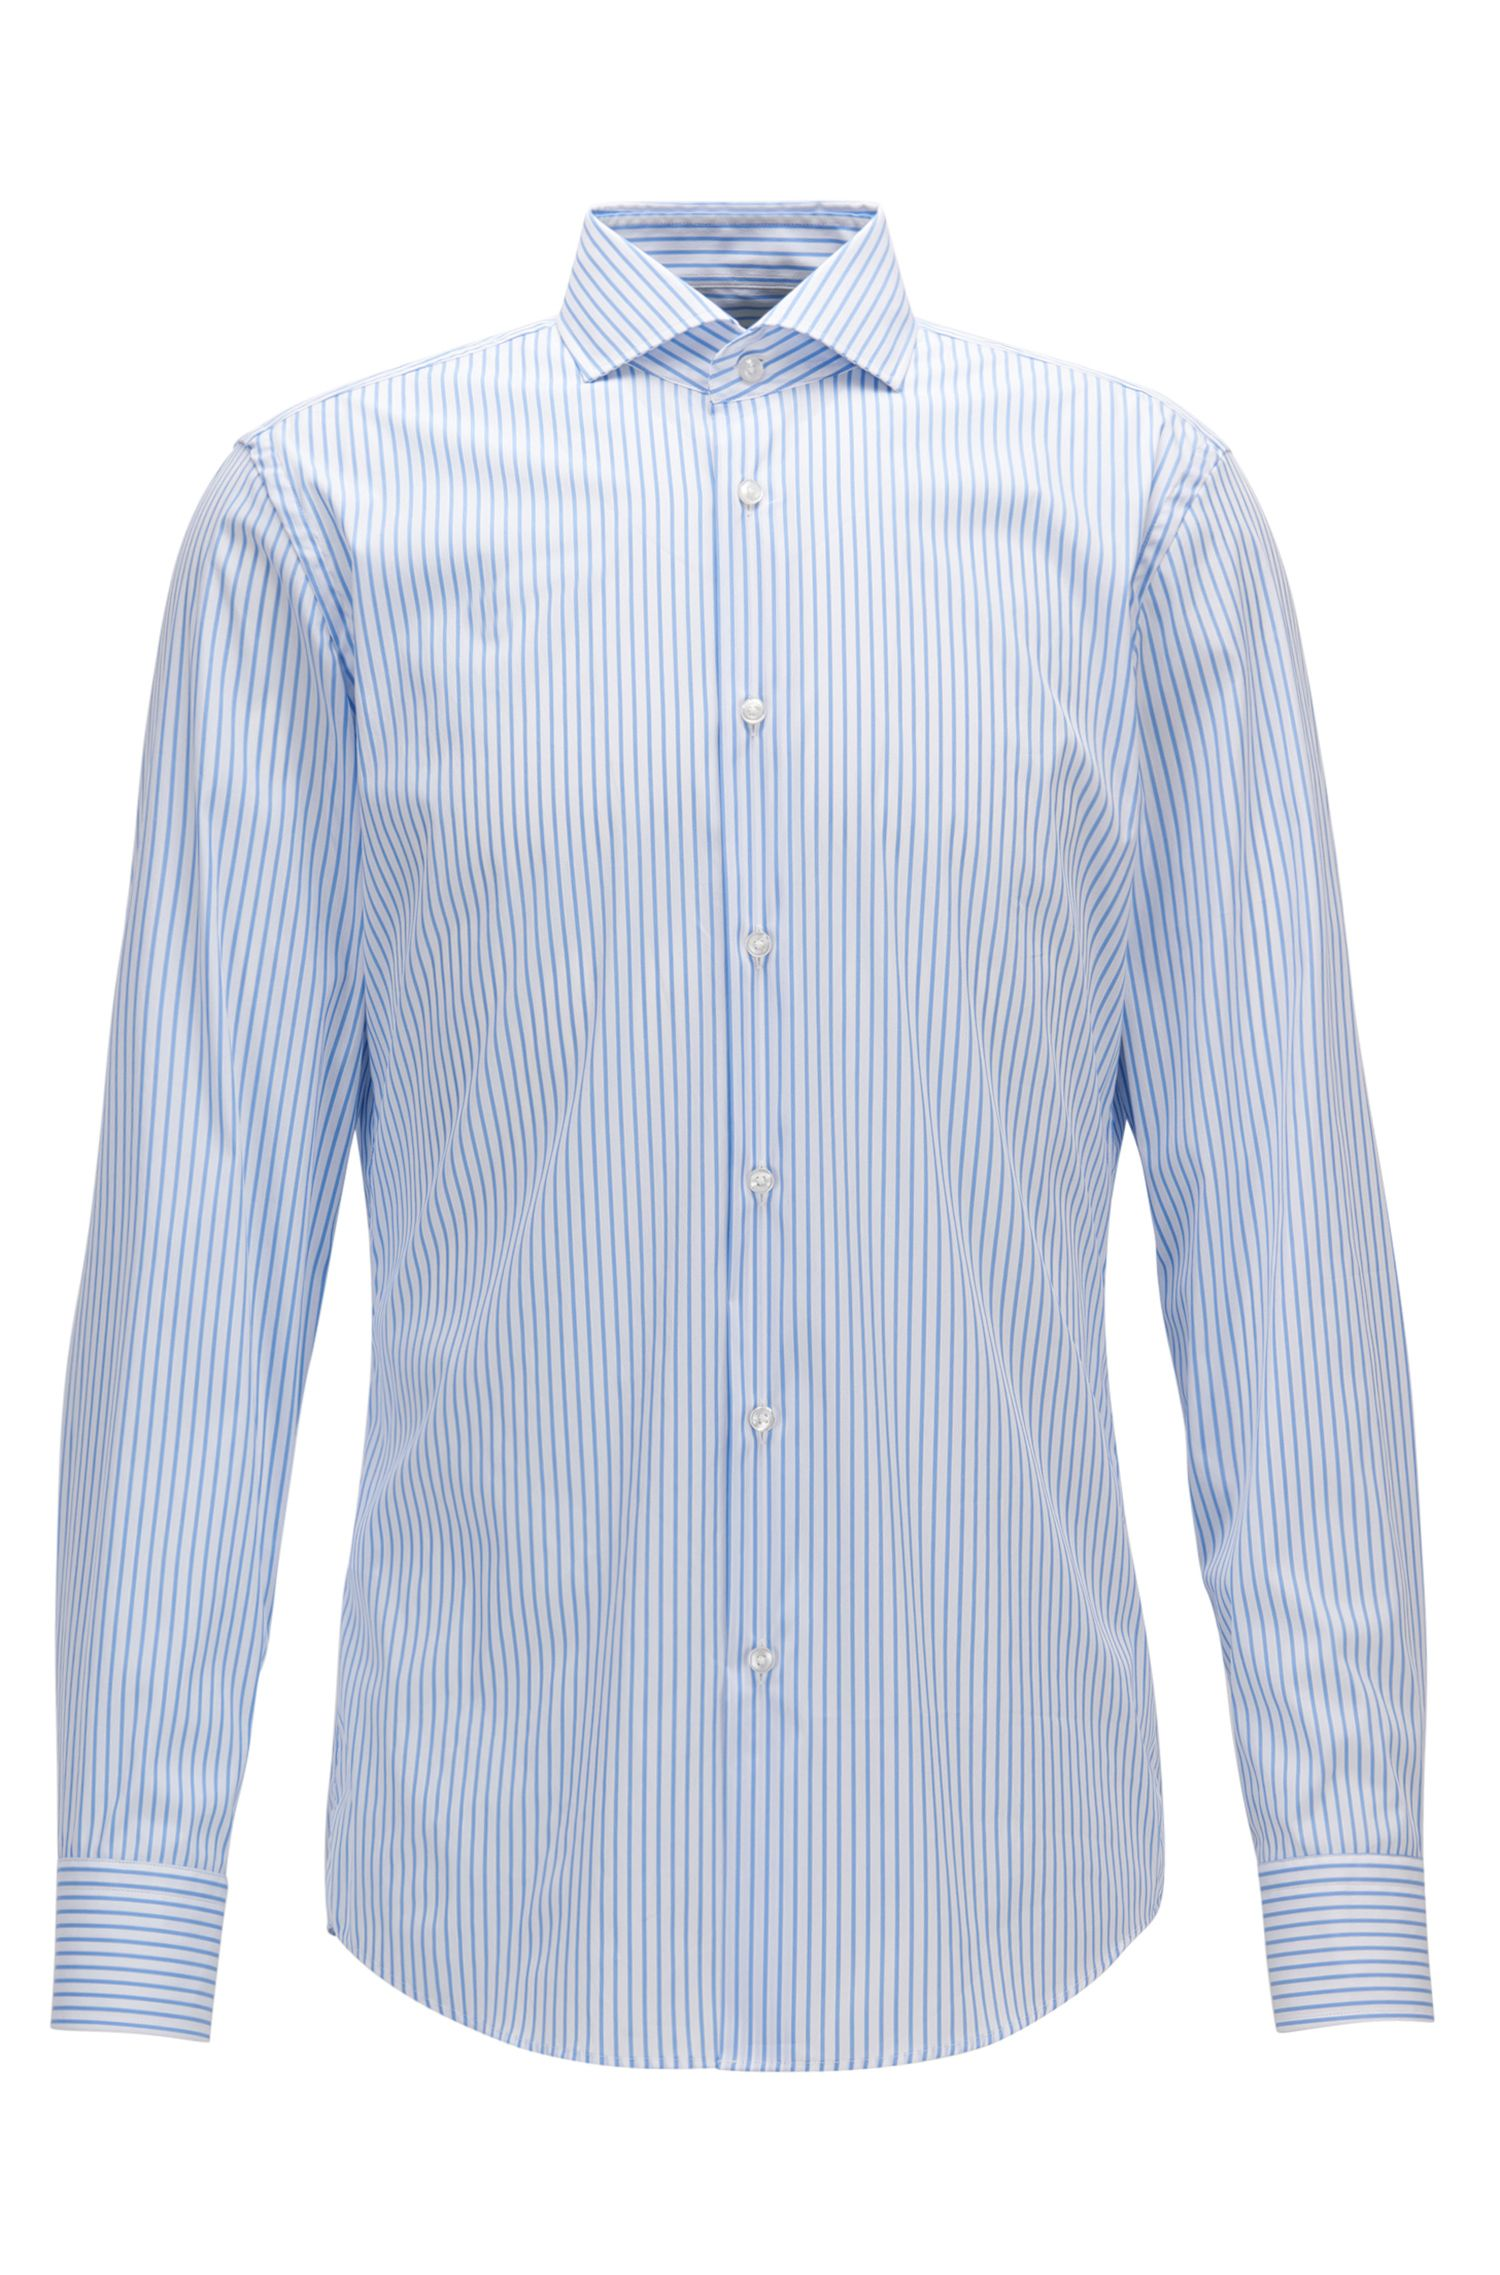 Striped cotton-blend shirt in a slim fit